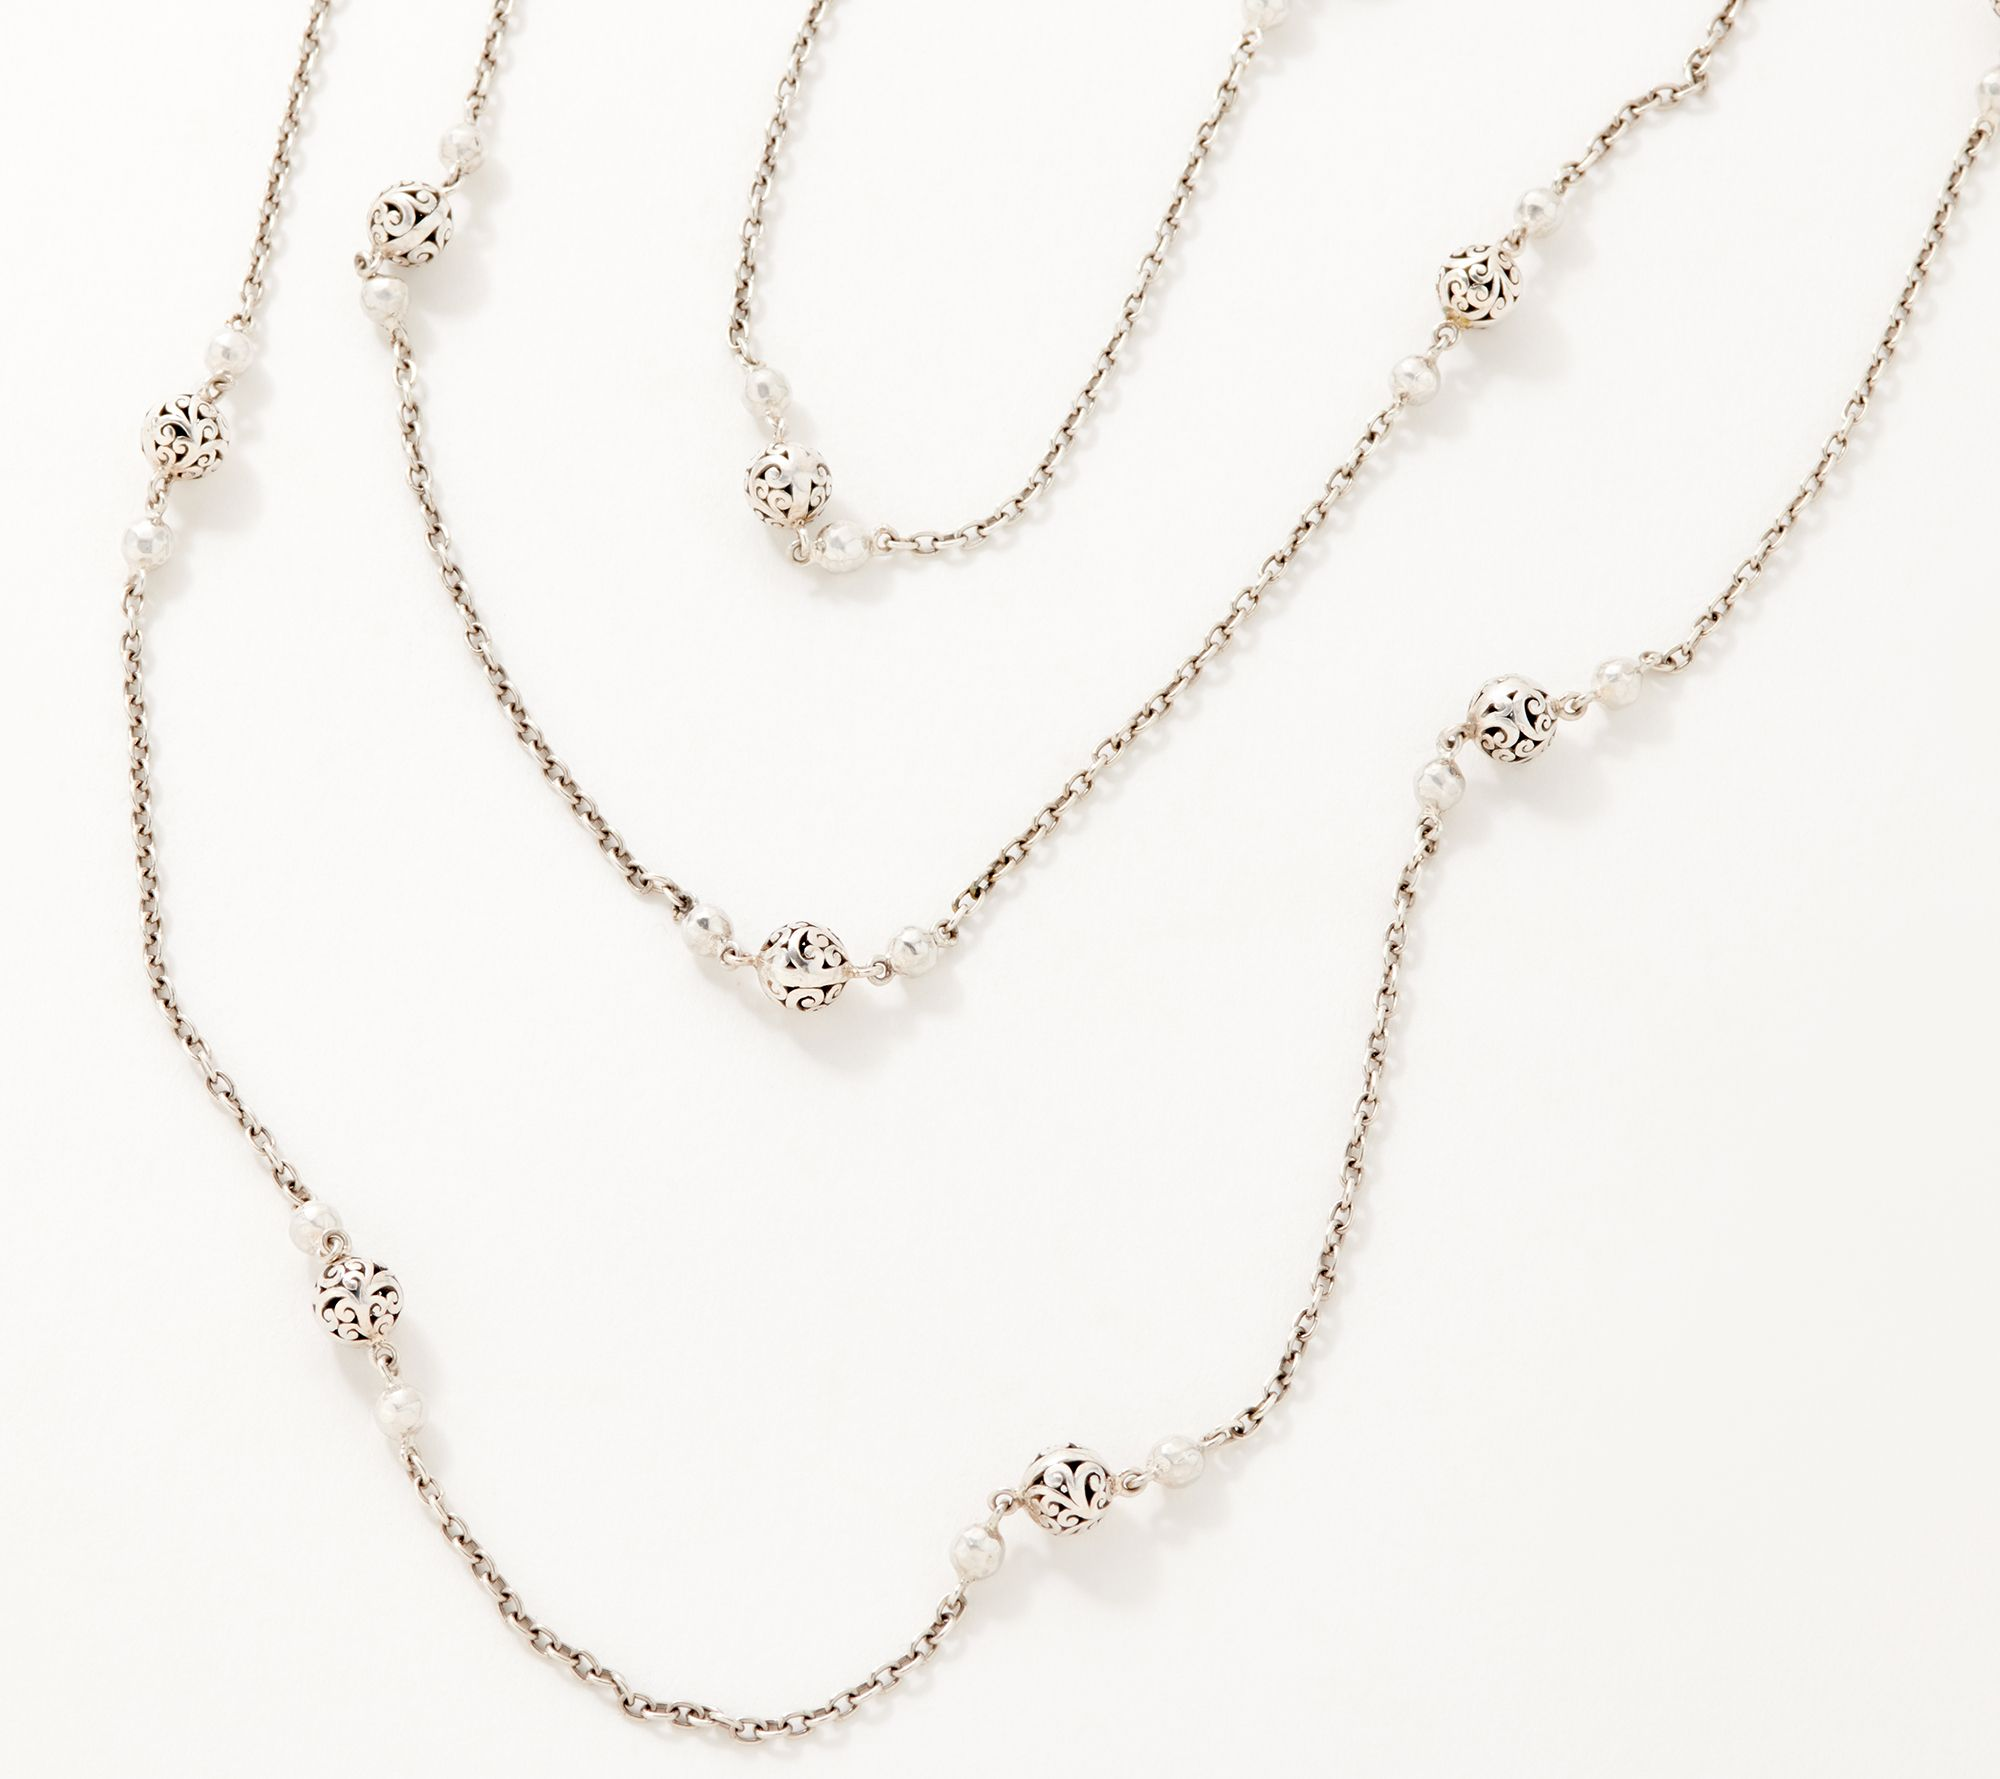 28% off a sterling silver beaded station necklace